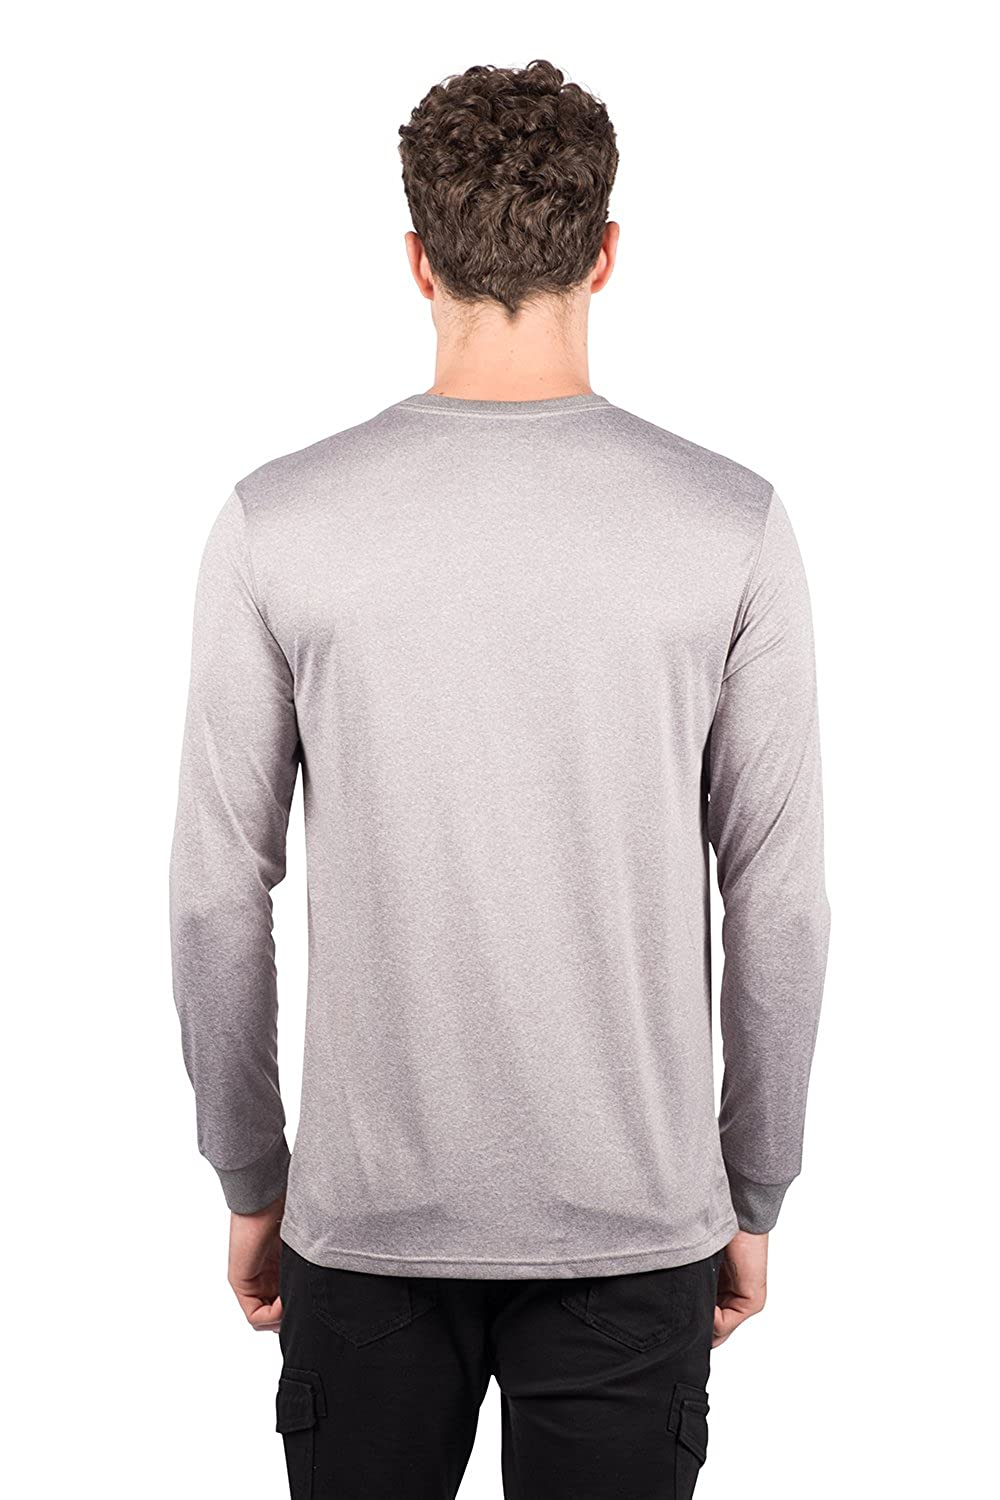 Small Heather Gray NFL Buffalo Bills Ultra Game Mens LS POLY CREW NECK TEE